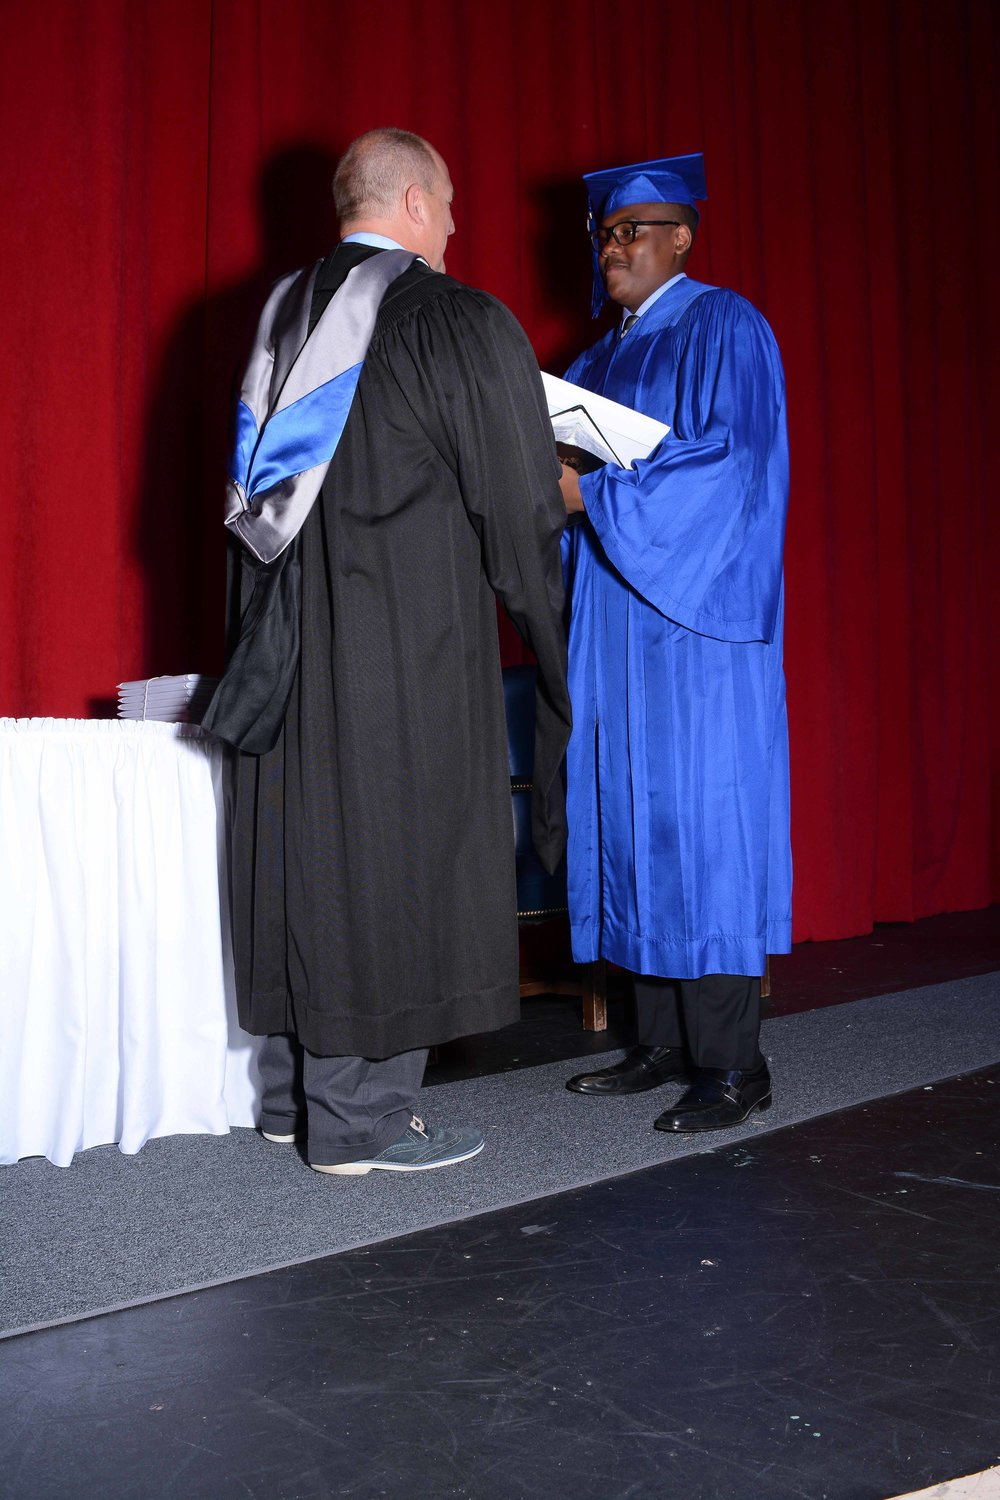 May14 Commencement167.jpg